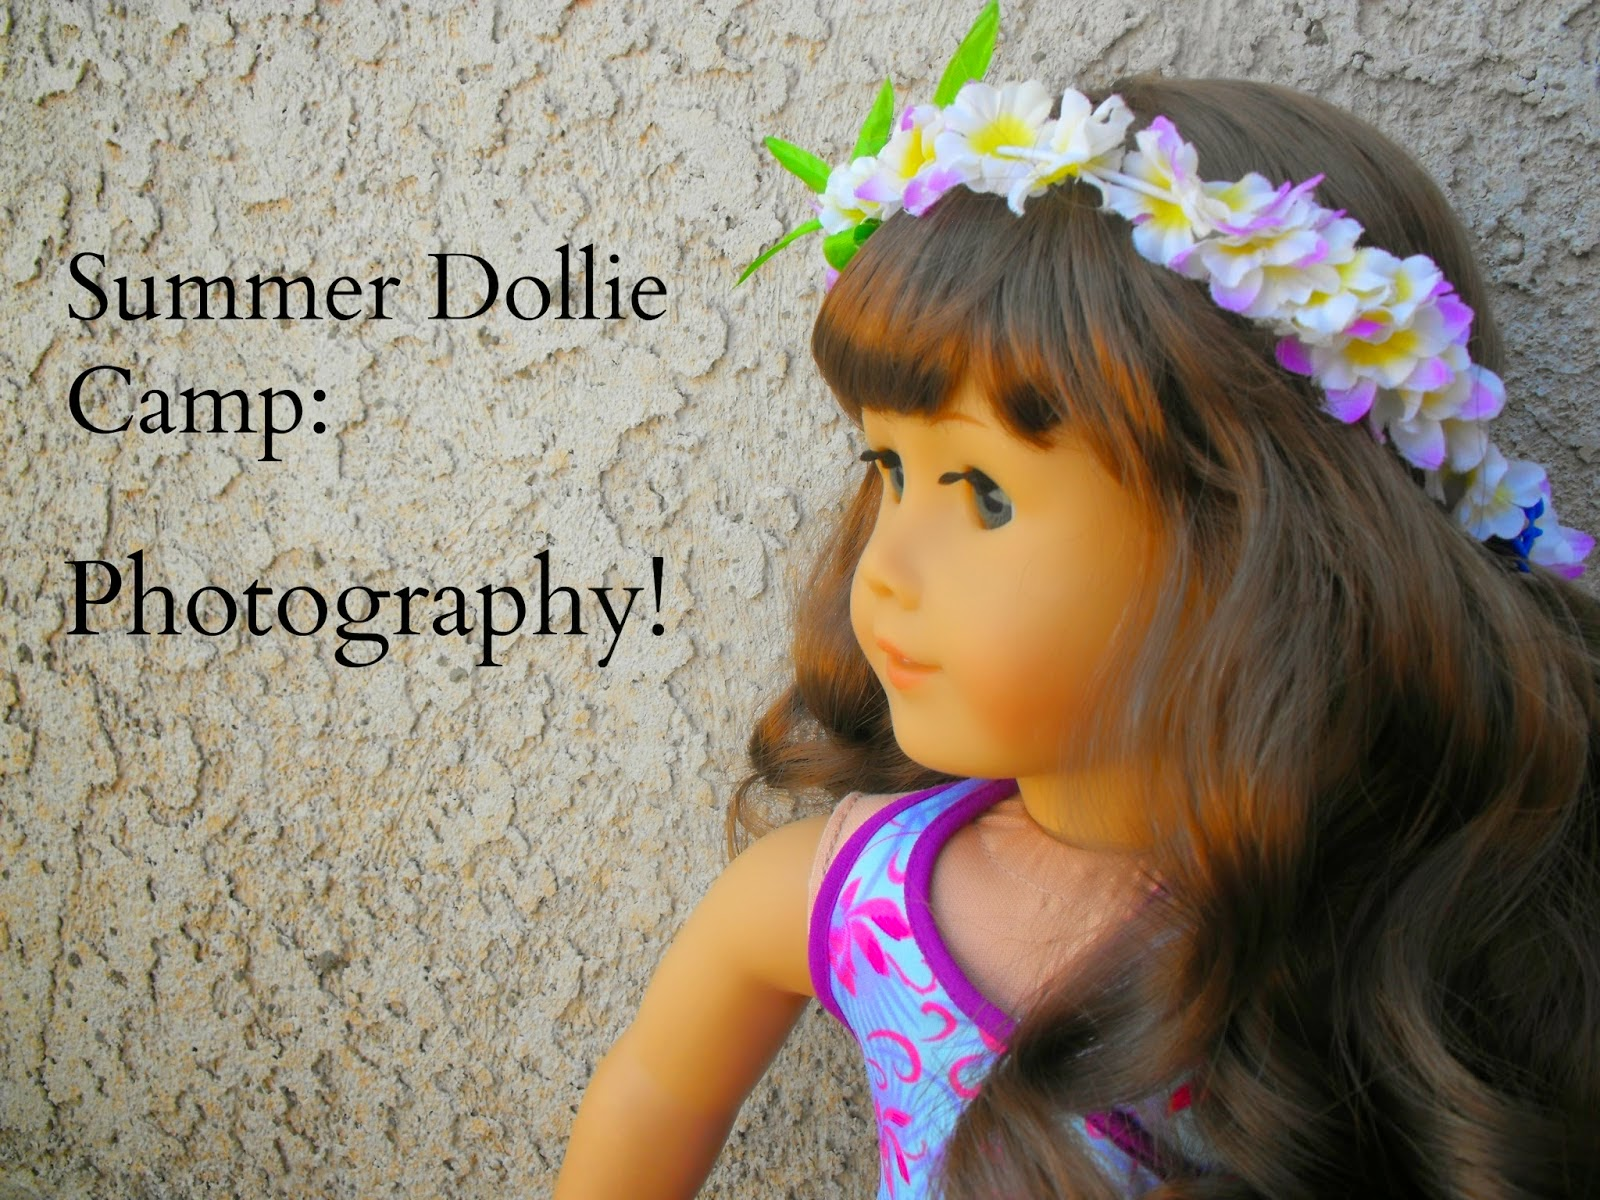 I signed up for Summer Dollie Camp